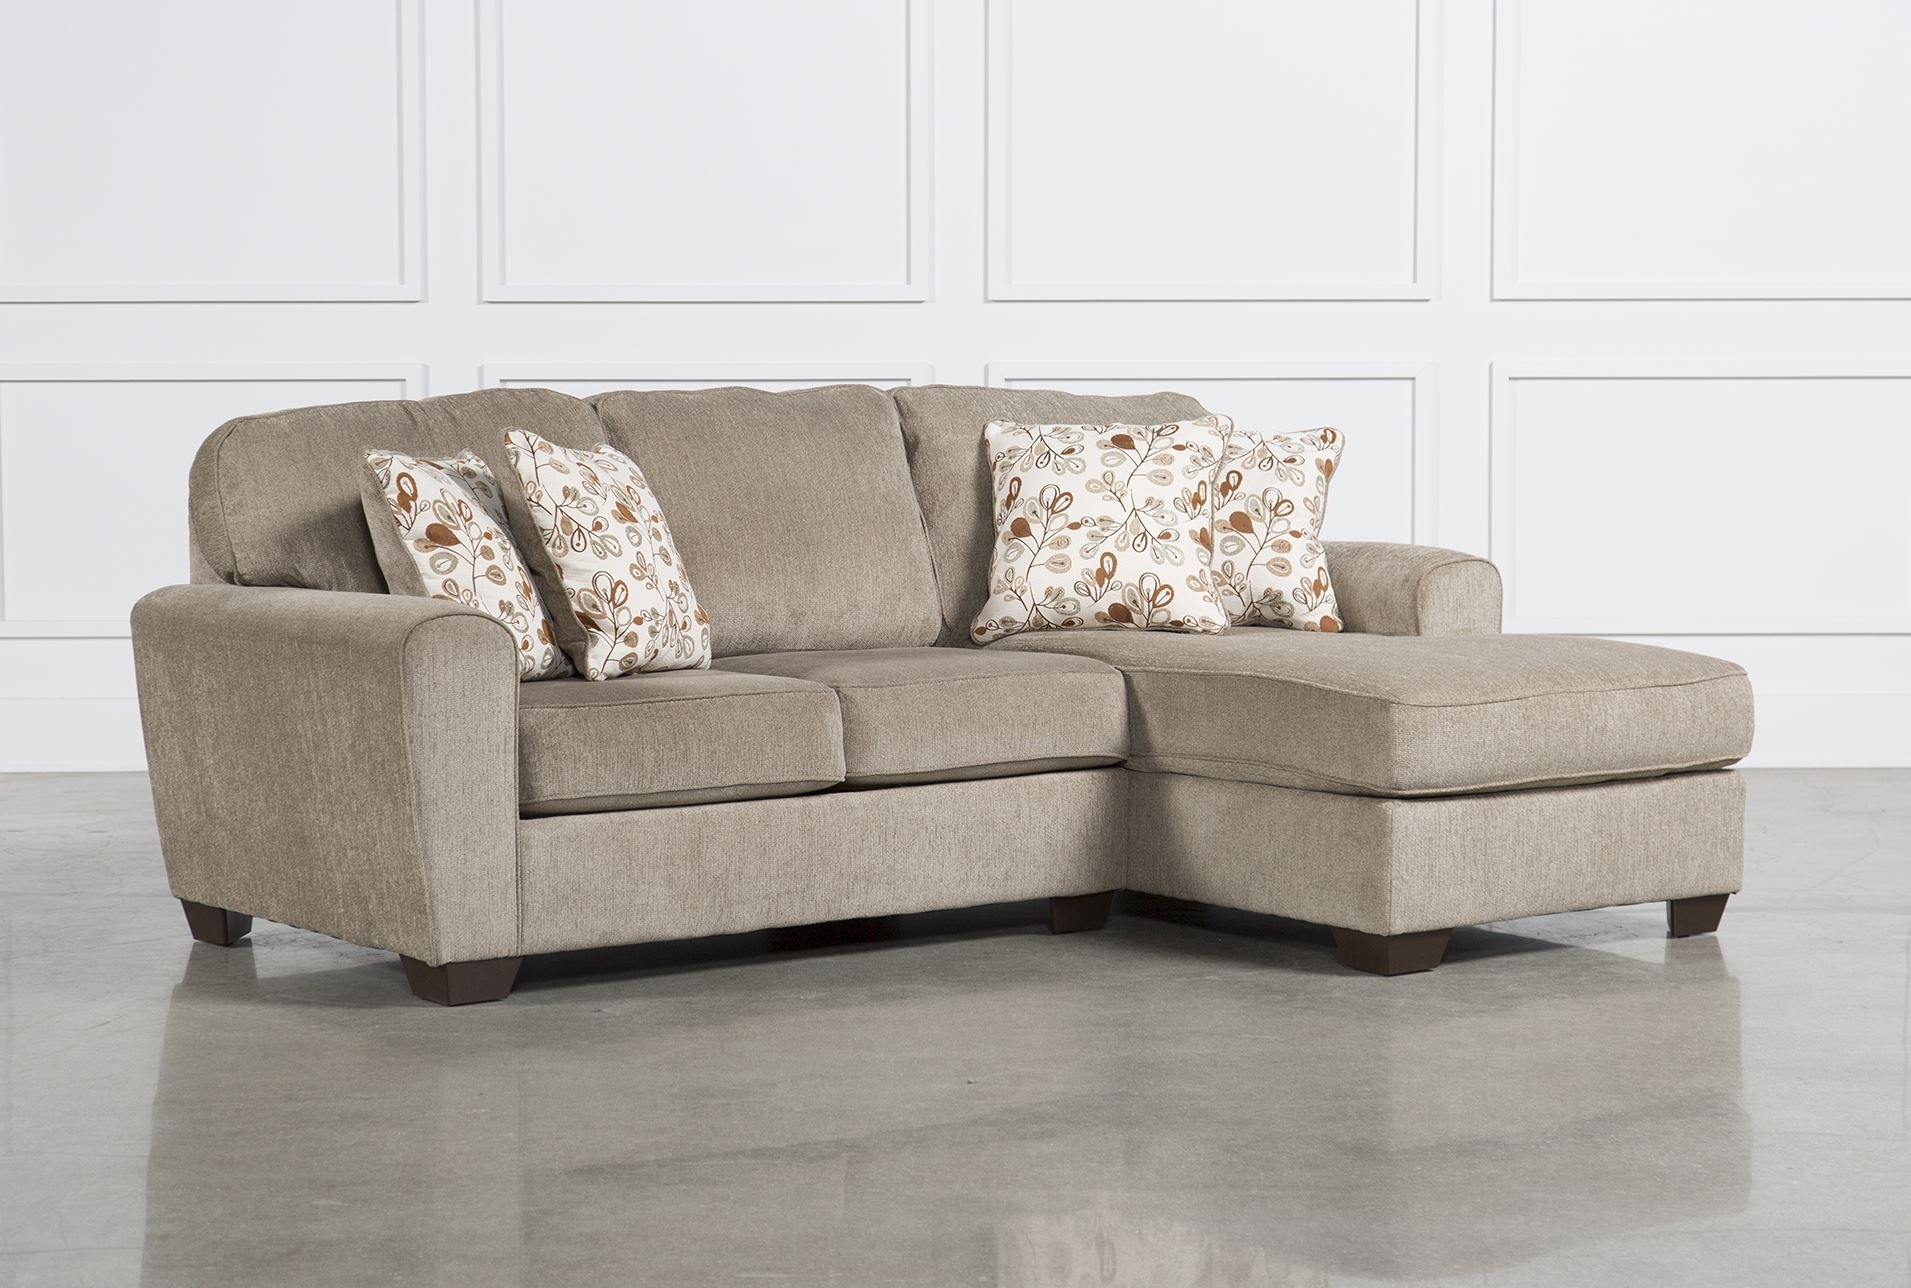 Collection Of Solutions 2 Piece Chaise Sectional With Patola Park 2 For Delano 2 Piece Sectionals With Laf Oversized Chaise (View 25 of 30)